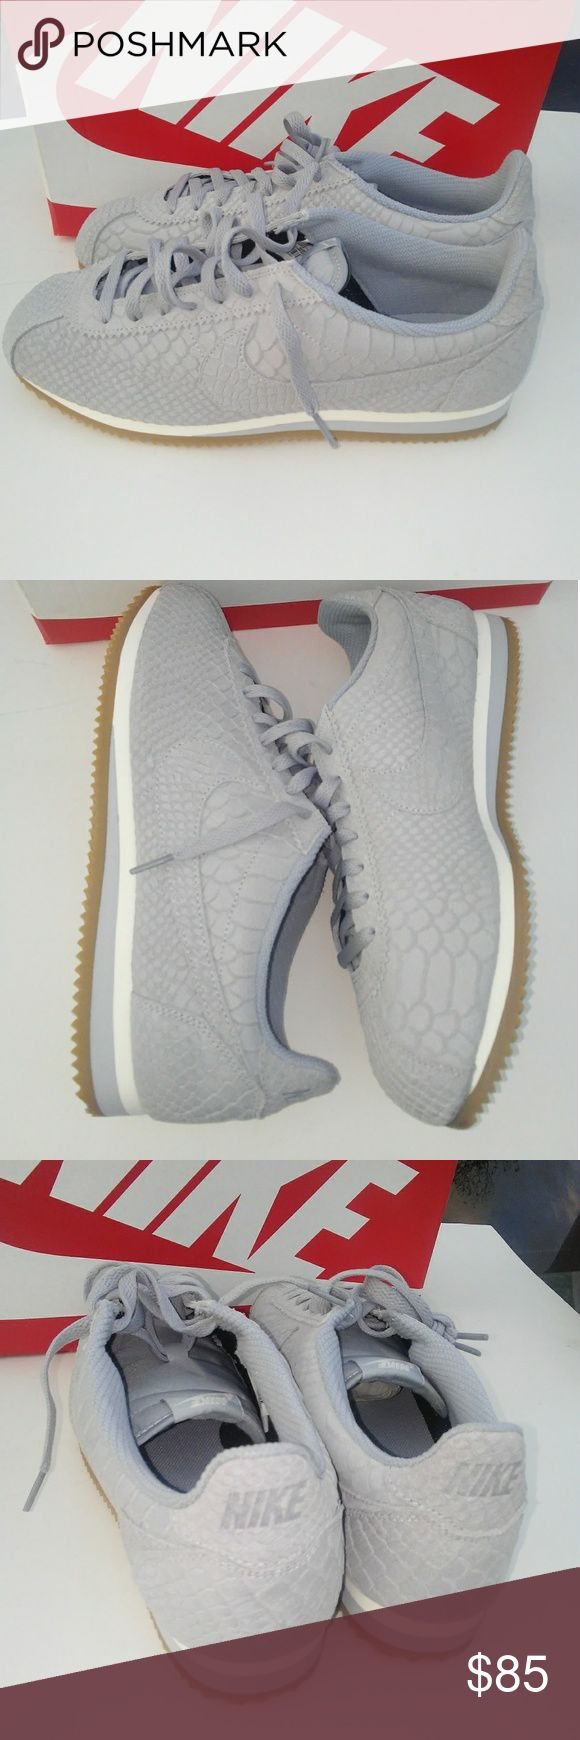 Nike Cortez Leather Prm Brand new in box  100% authentic All over scaly premium leather  EVA sole unit Gum rubber sole  Great fit with your favorite skinny jeans or for the sassy savages that prefer jeggings. All around classic shoe and style for a nice relaxed casual atmosphere.  Ladies will love it, giving you wide smiles. Nike Shoes Sneakers